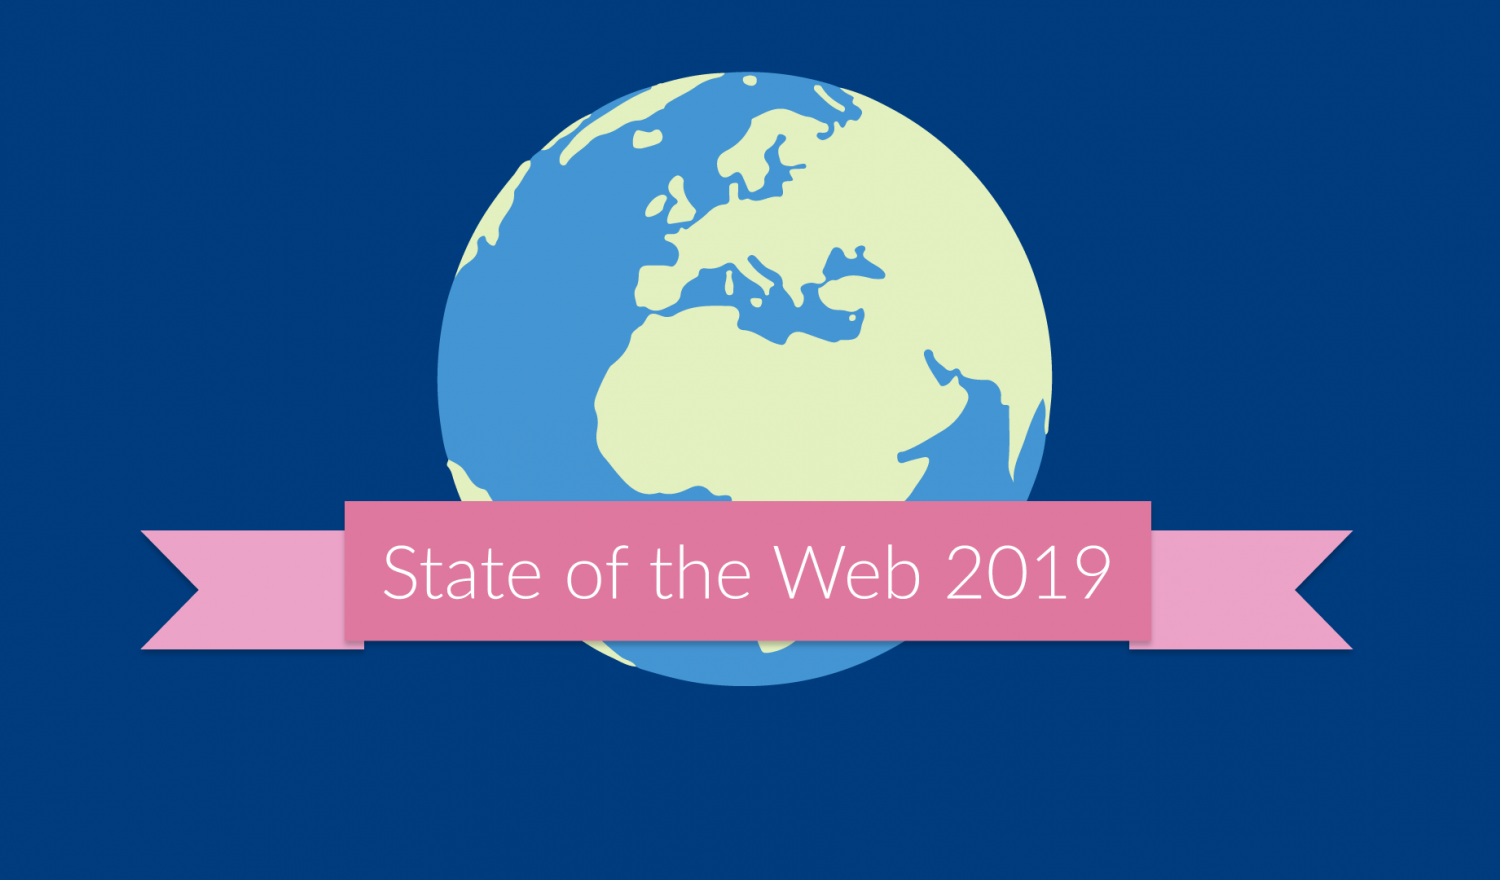 State of the Web on a pink ribbon in front of the globe